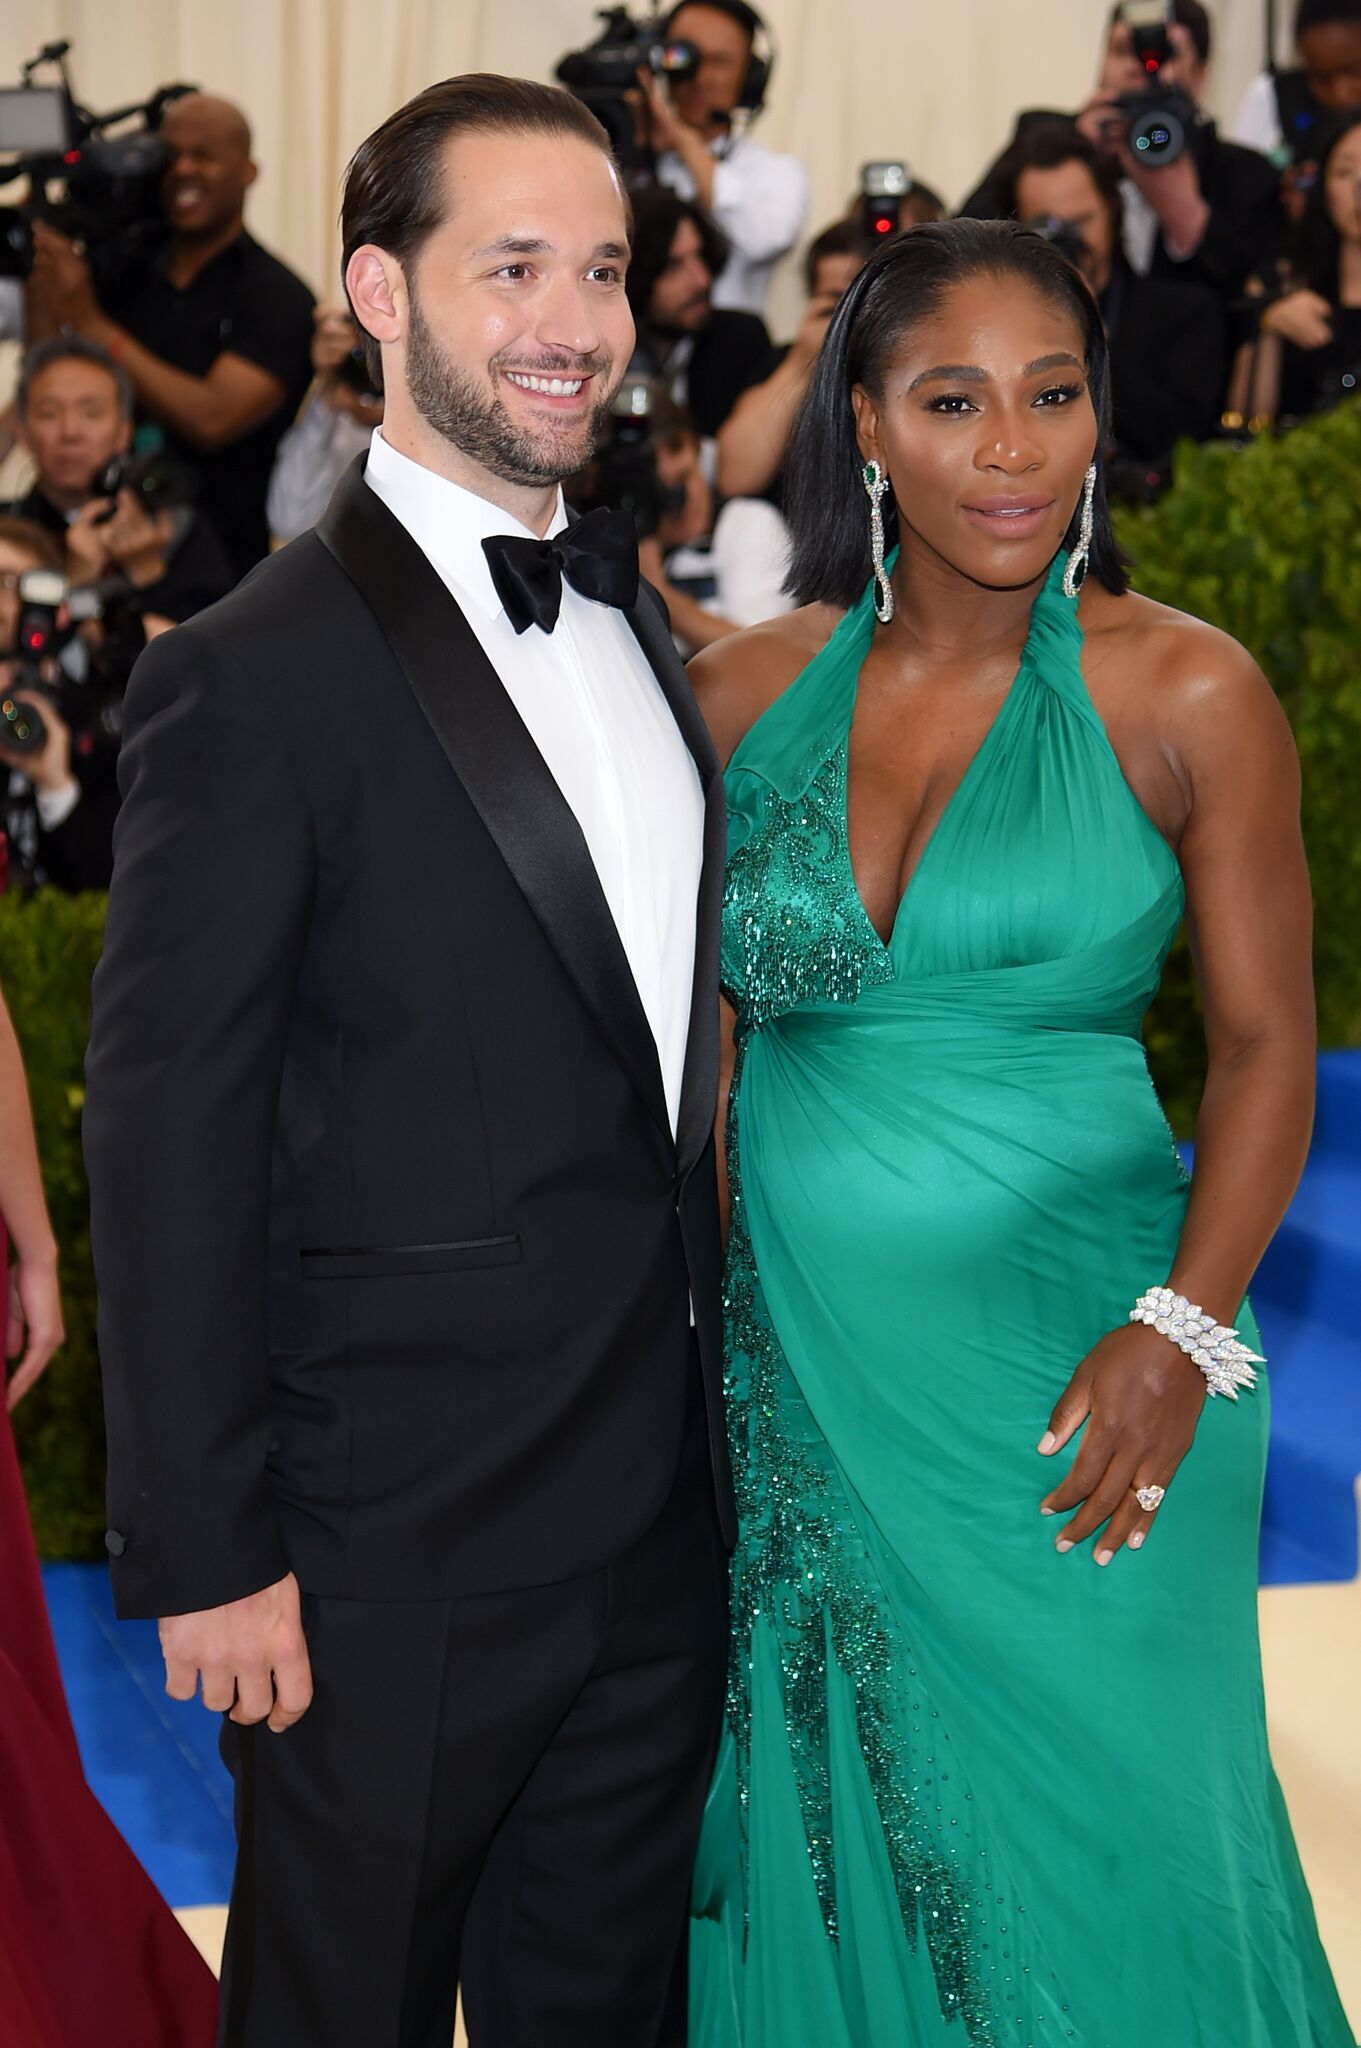 Alexis Ohanian and Serena Williams at the Metropolitan Museum of Art on May 1, 2017. | Source: Getty Images